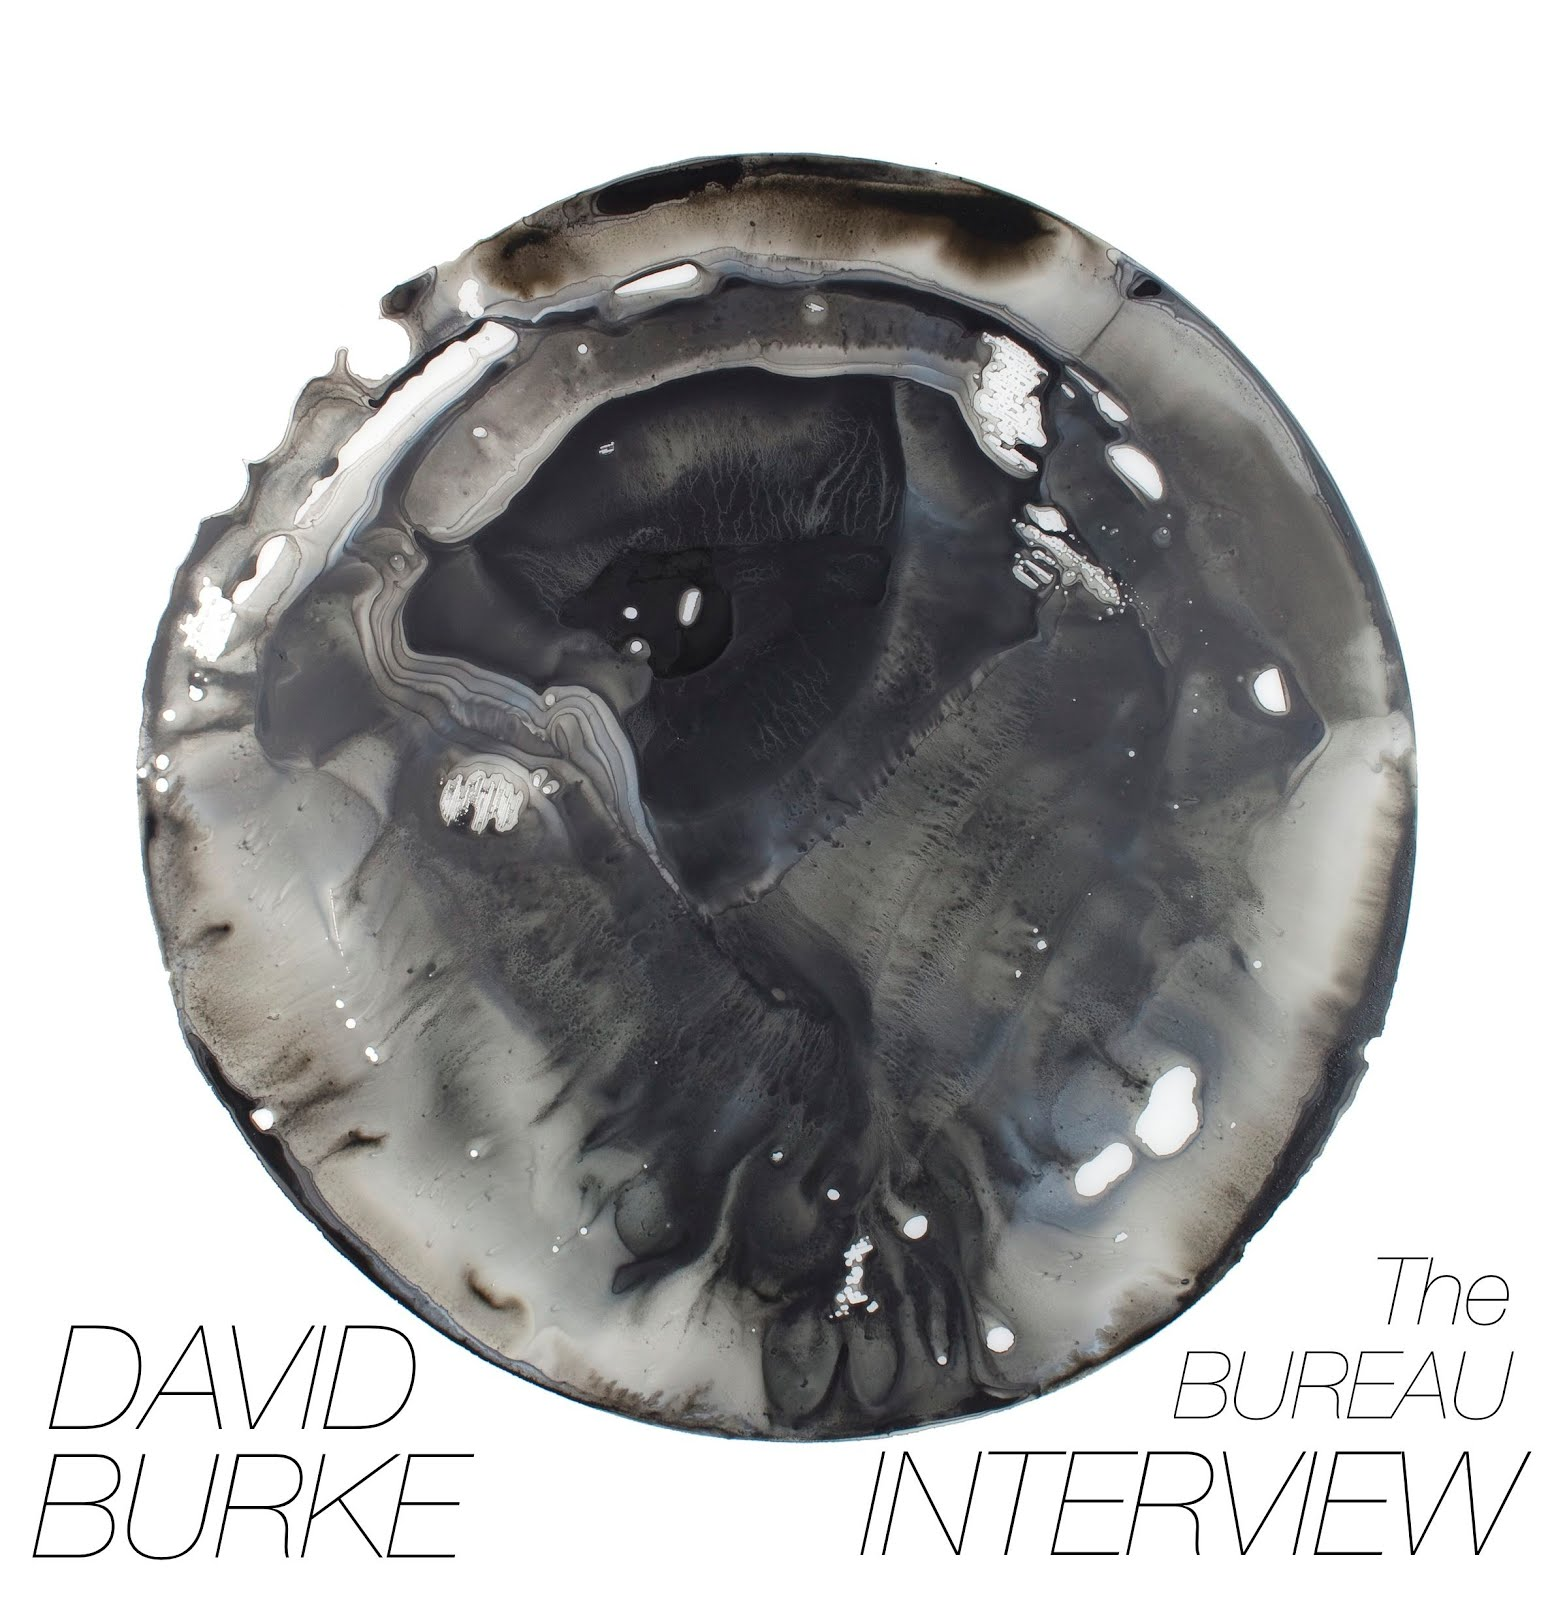 Interview: DAVID BURKE